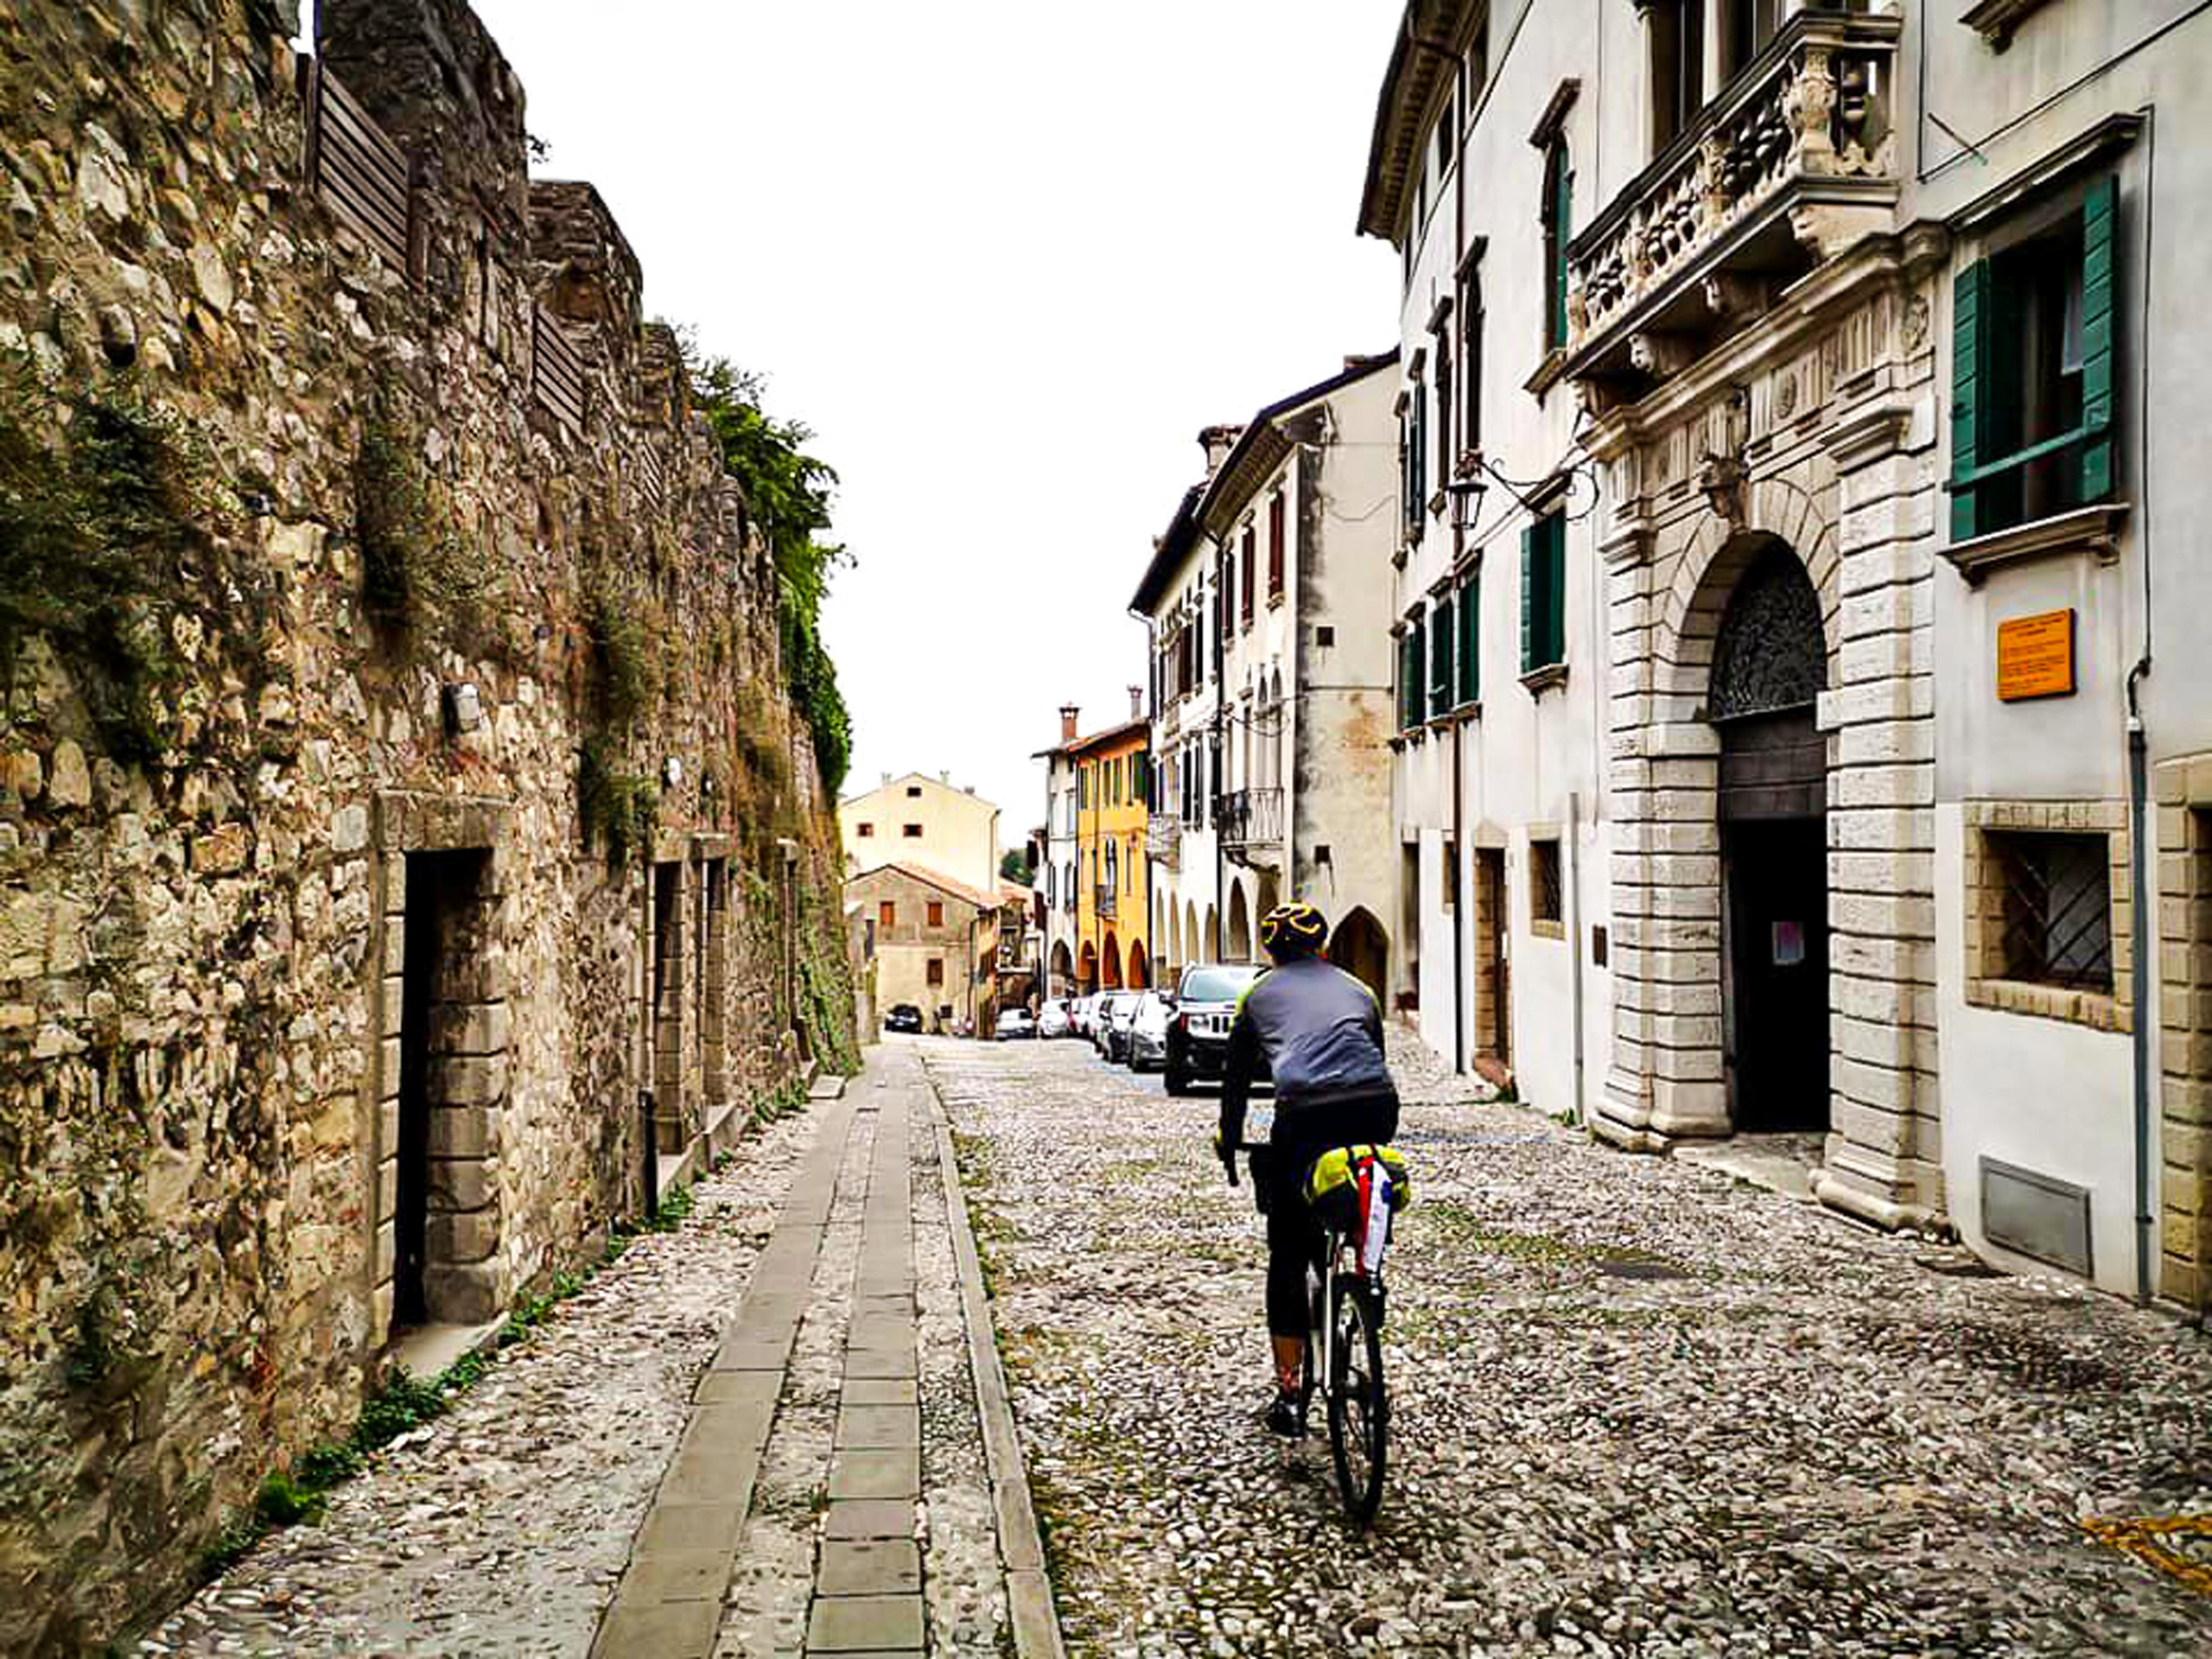 Cycling in the old city street